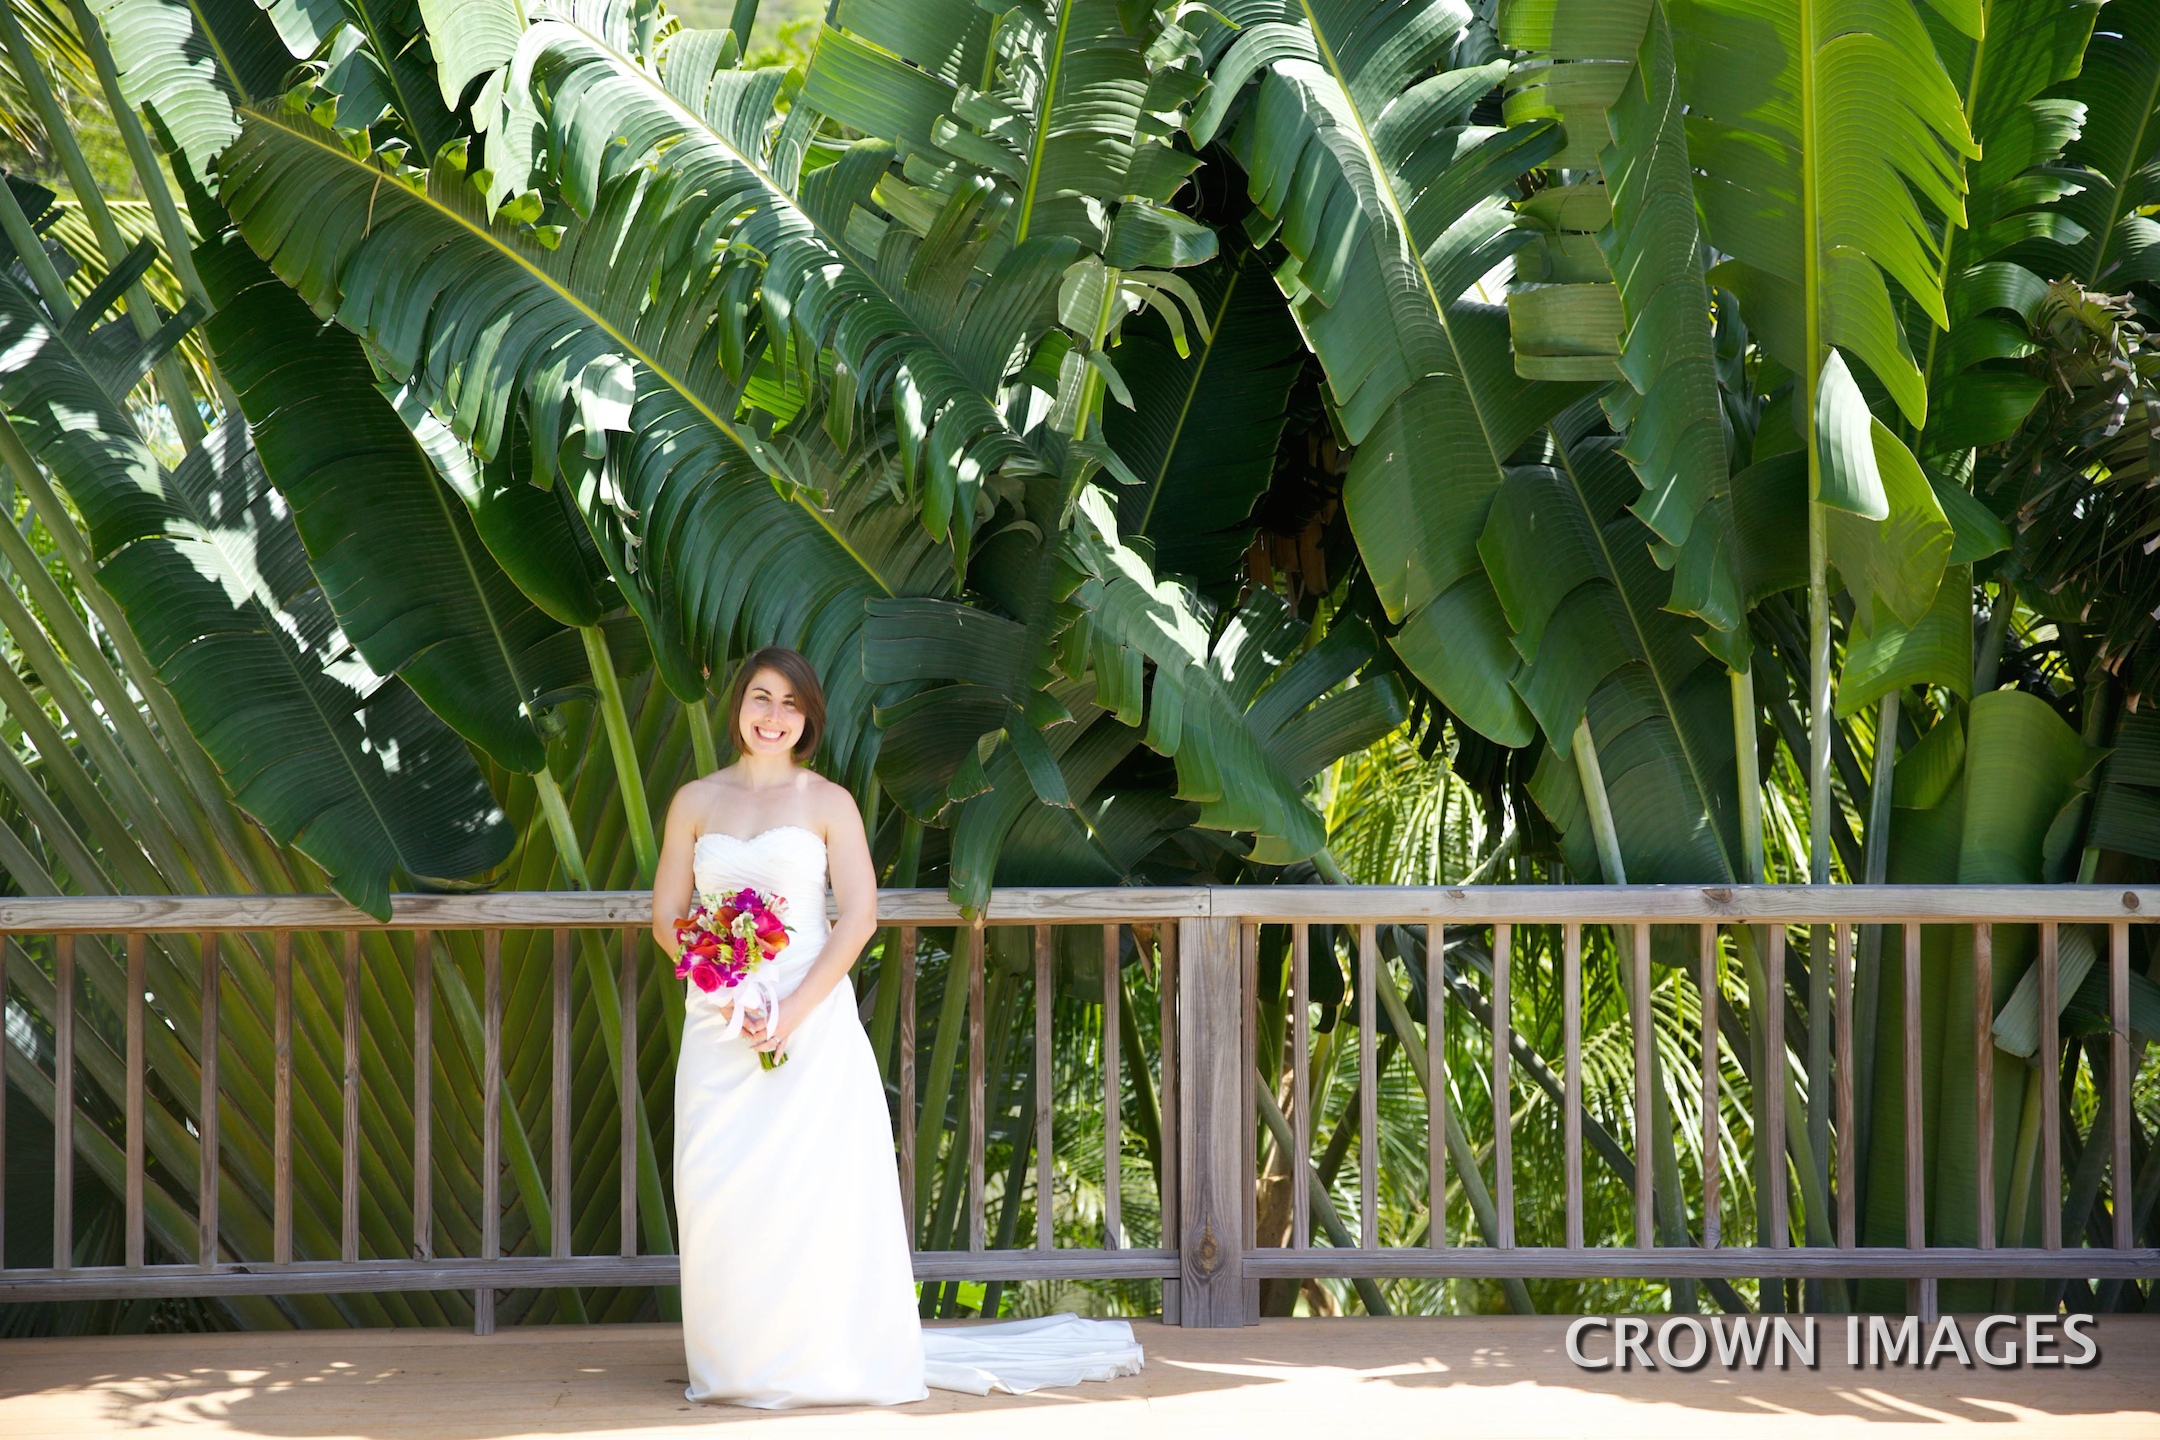 crown images virgin islands photographer